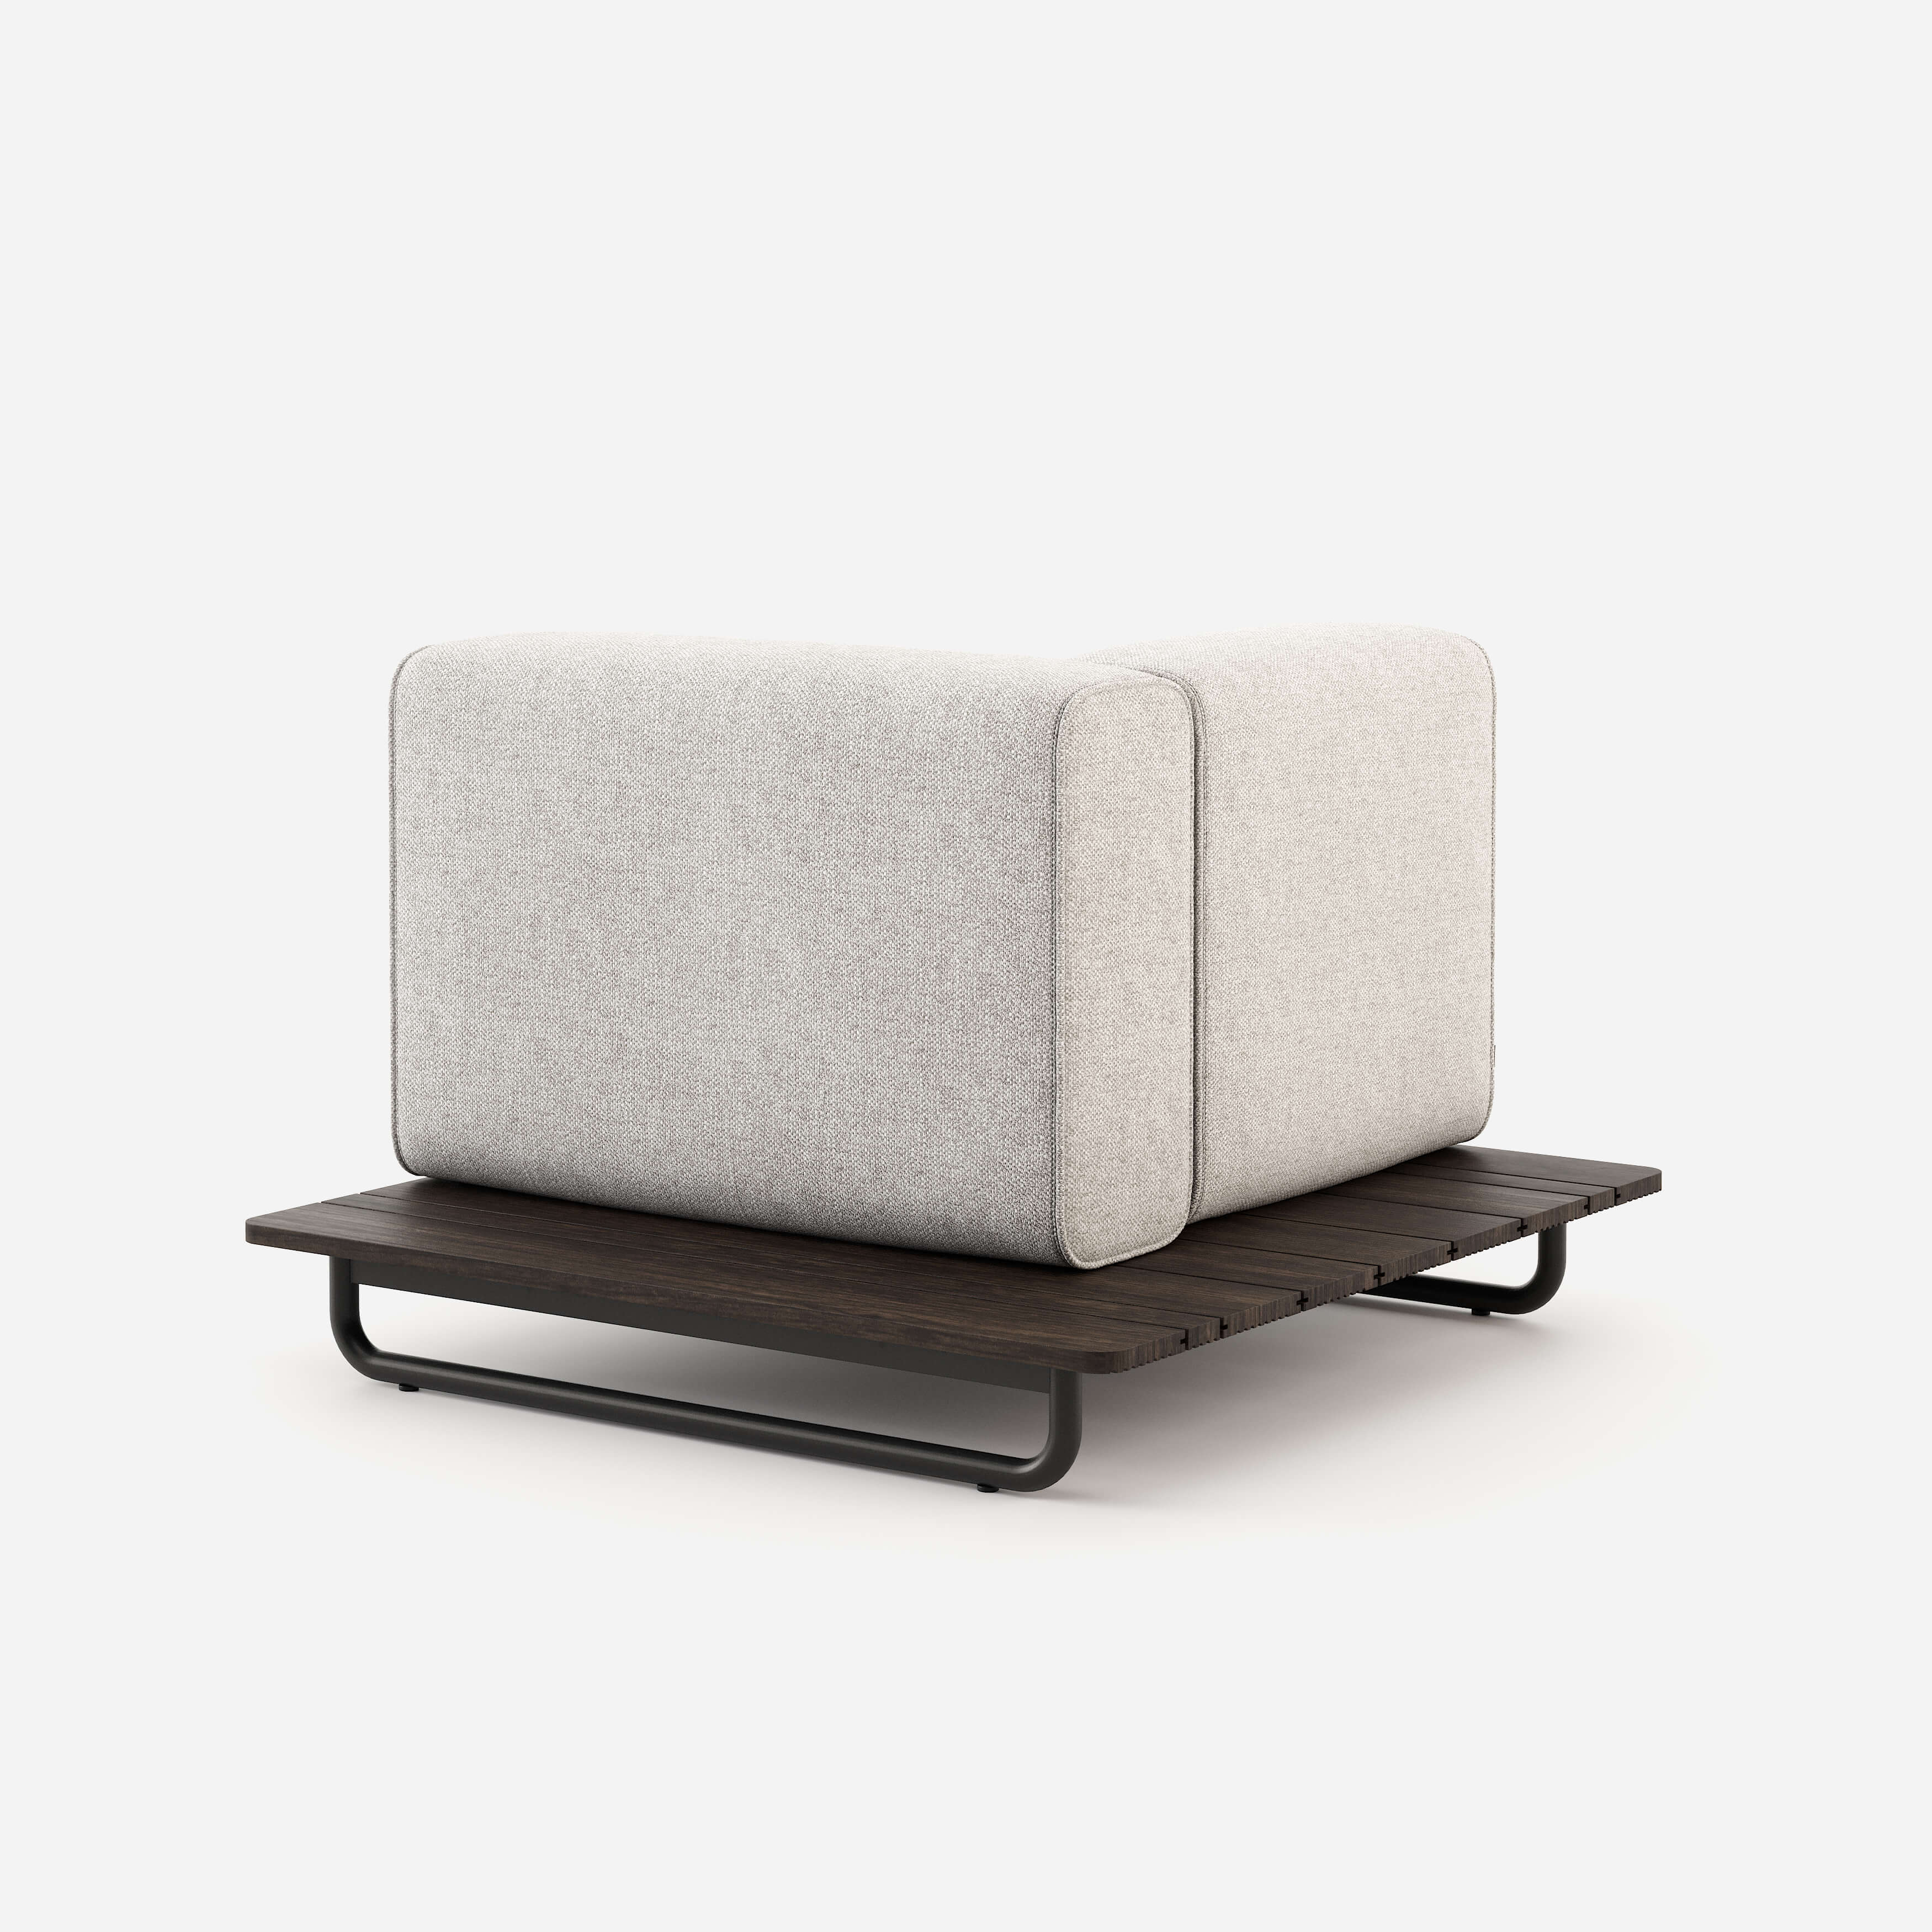 Copacabana-Right-Armrest-domkapa-outdoor-collection-interior-design-trends-furniture-white-upholstery-fabrics-material-3